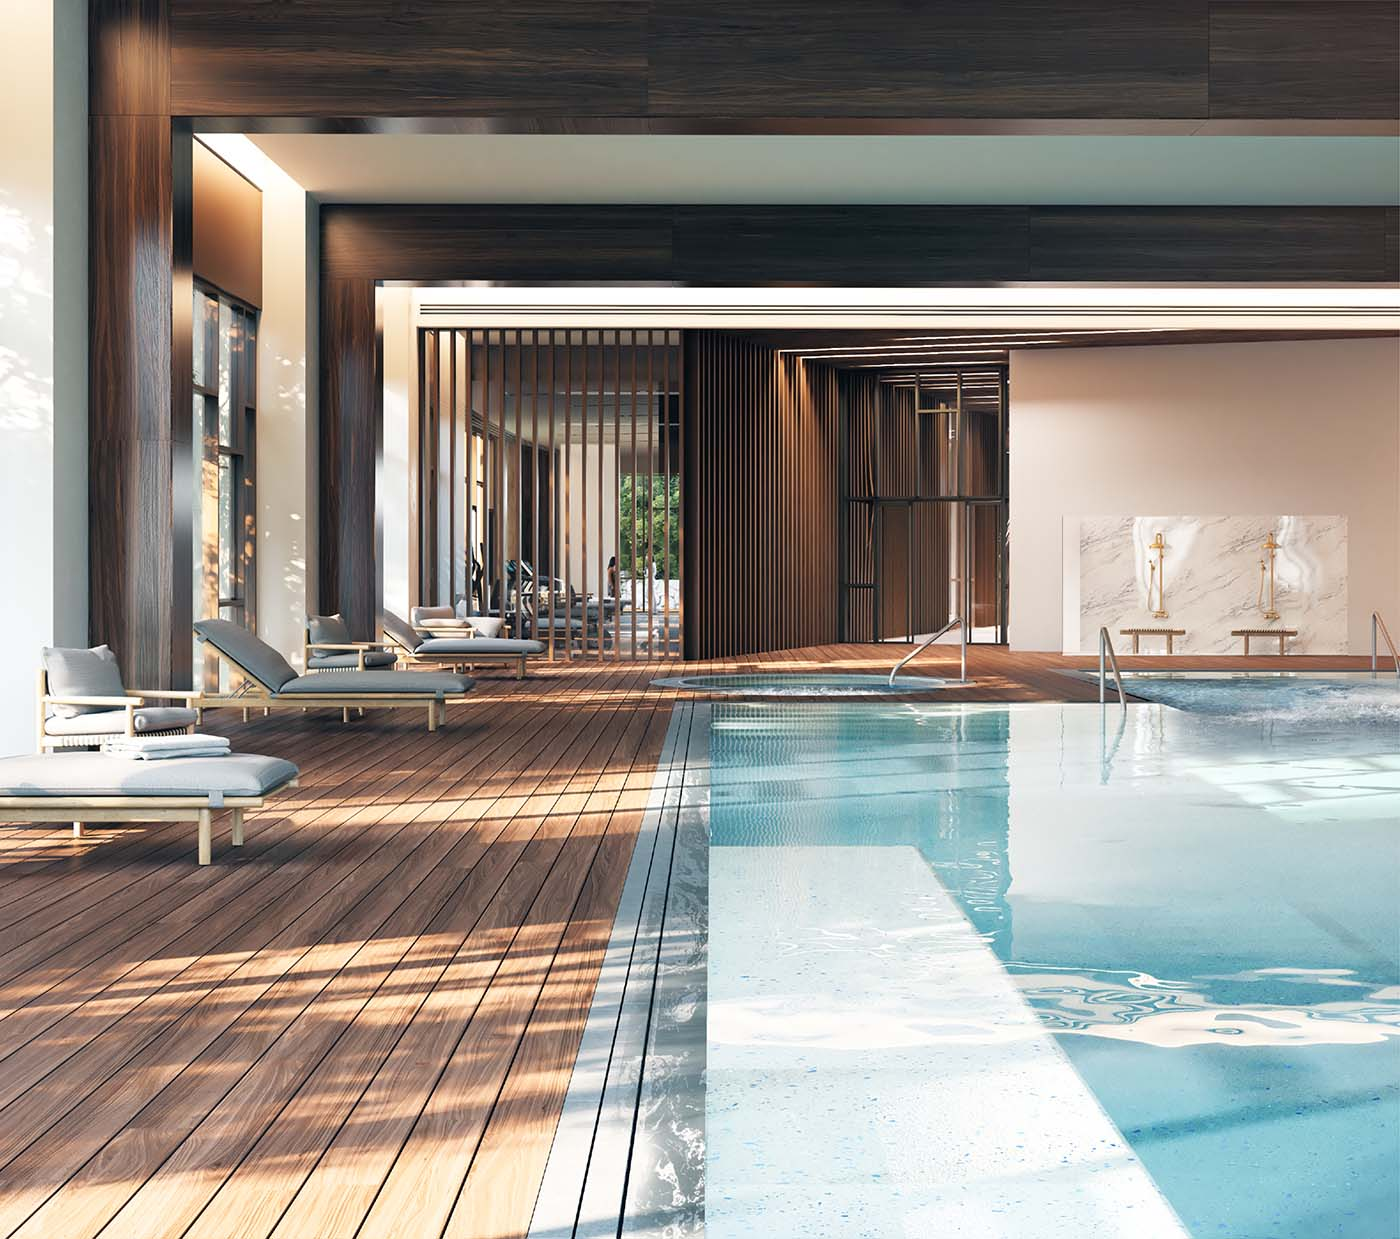 Swimming pool of a retirement village with timber floor.